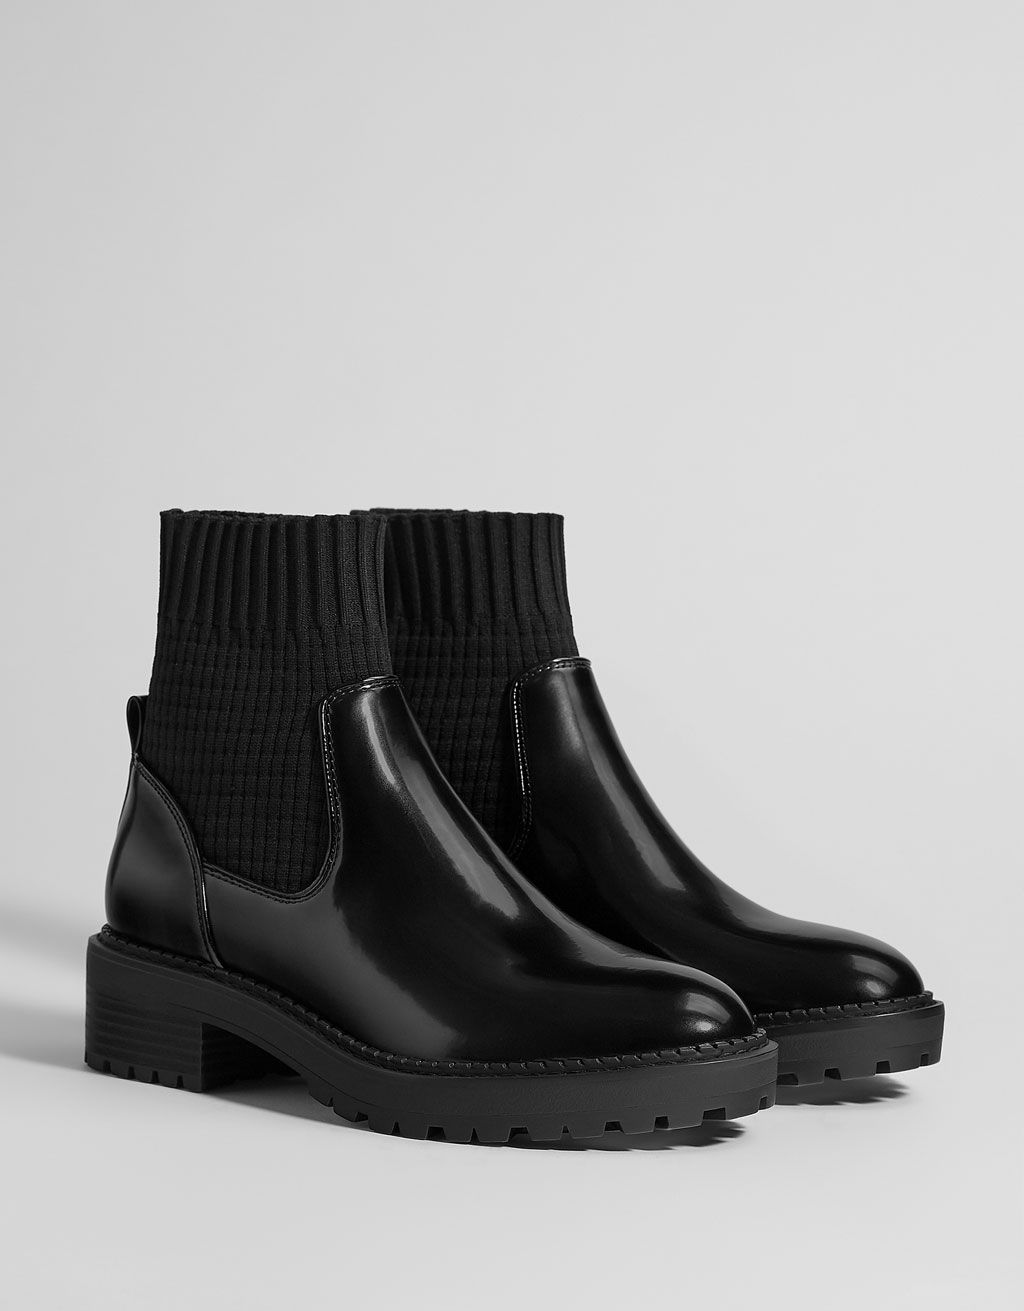 9c593ff0fed FLAT SOCK-STYLE ANKLE BOOTS BLACK ANKLE BOOTS WITH TRACK SOLES. FEATURIN  (IDR 699